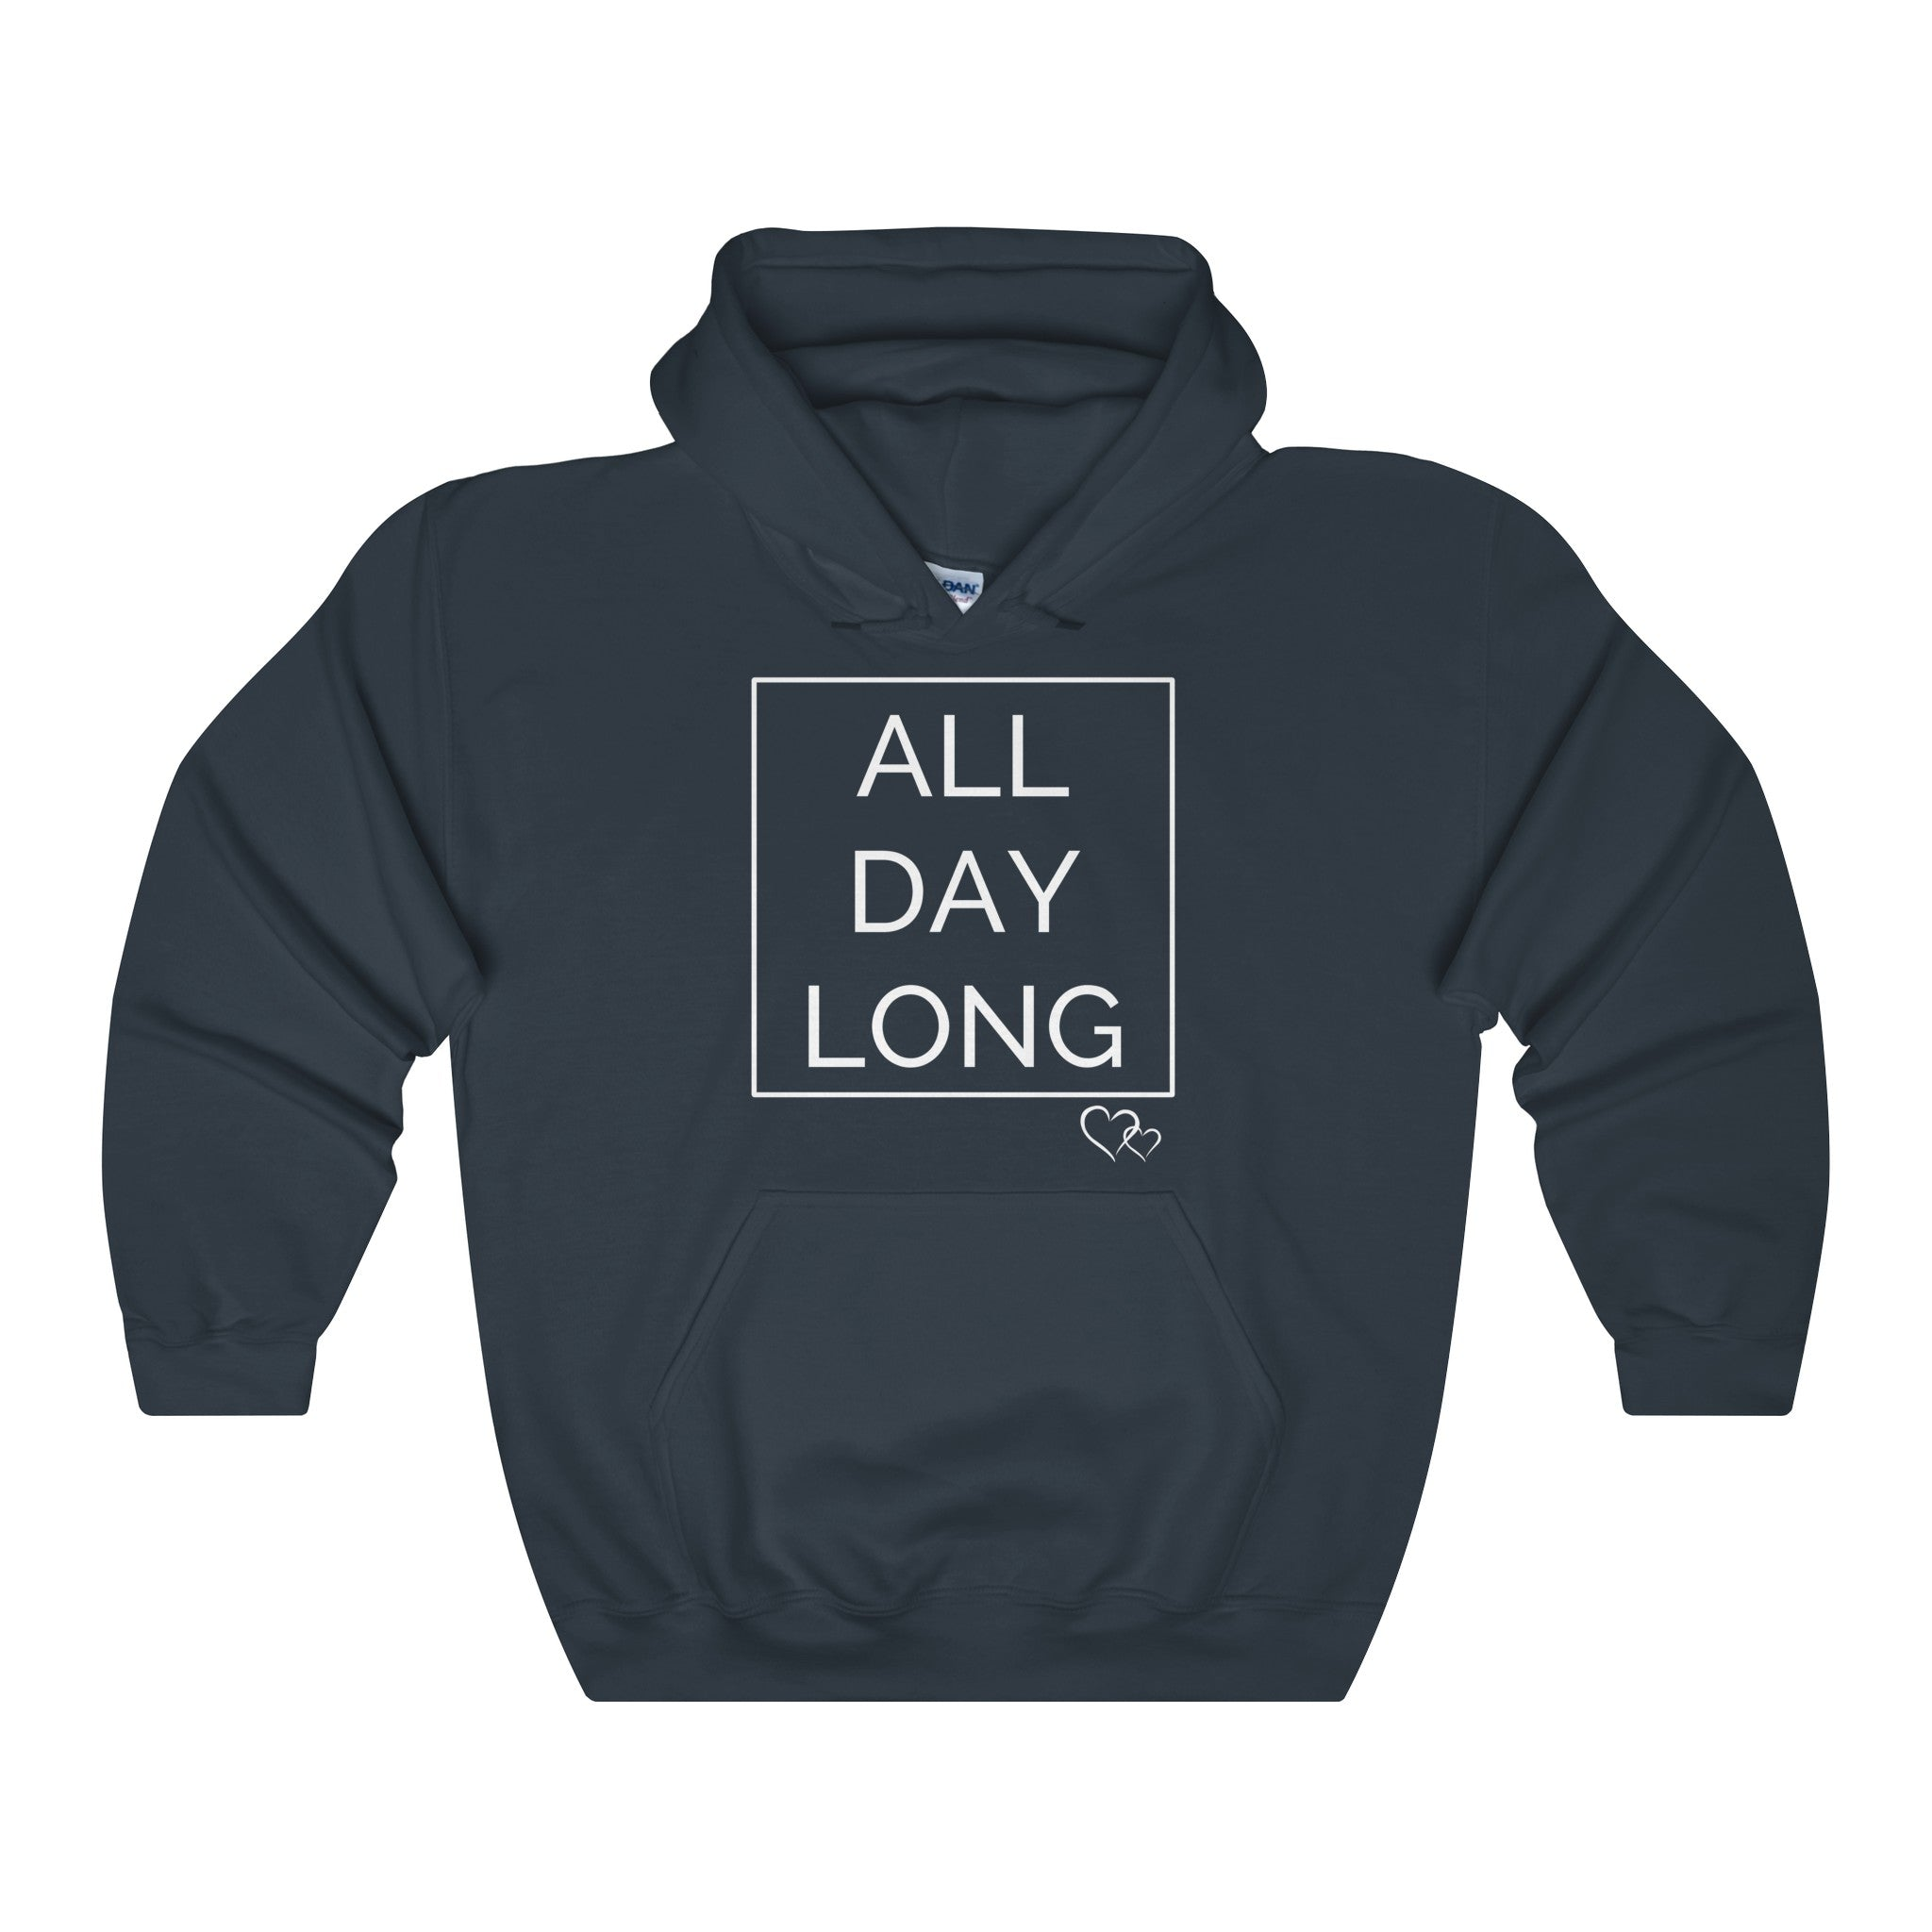 ALL DAY LONG - Hoodie (Unisex)